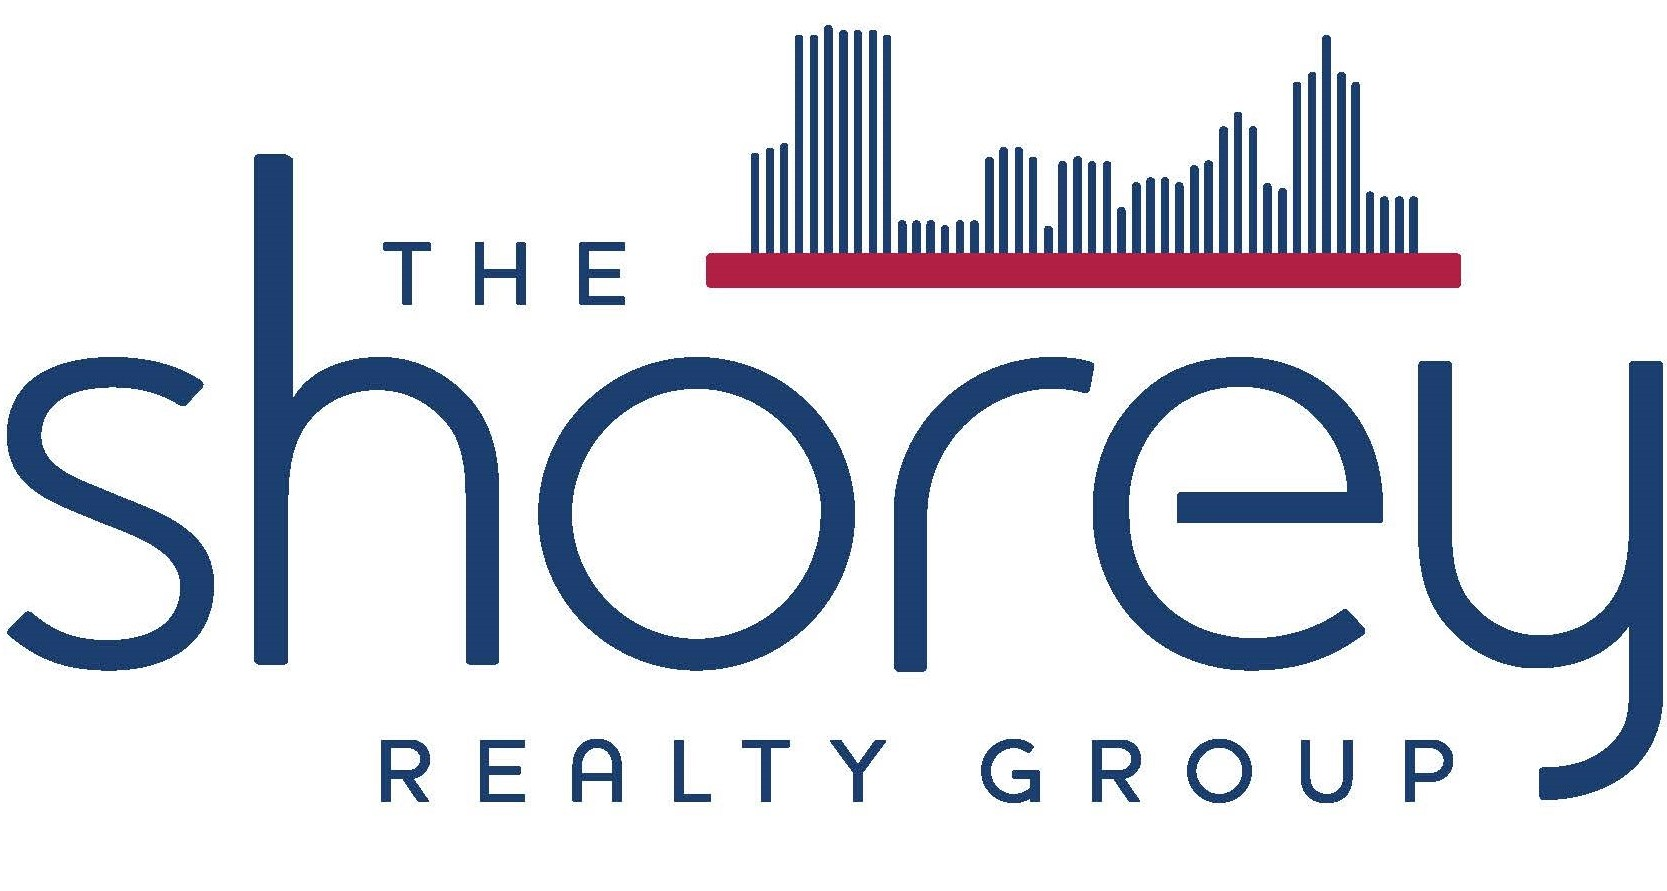 The Shorey Realty Group